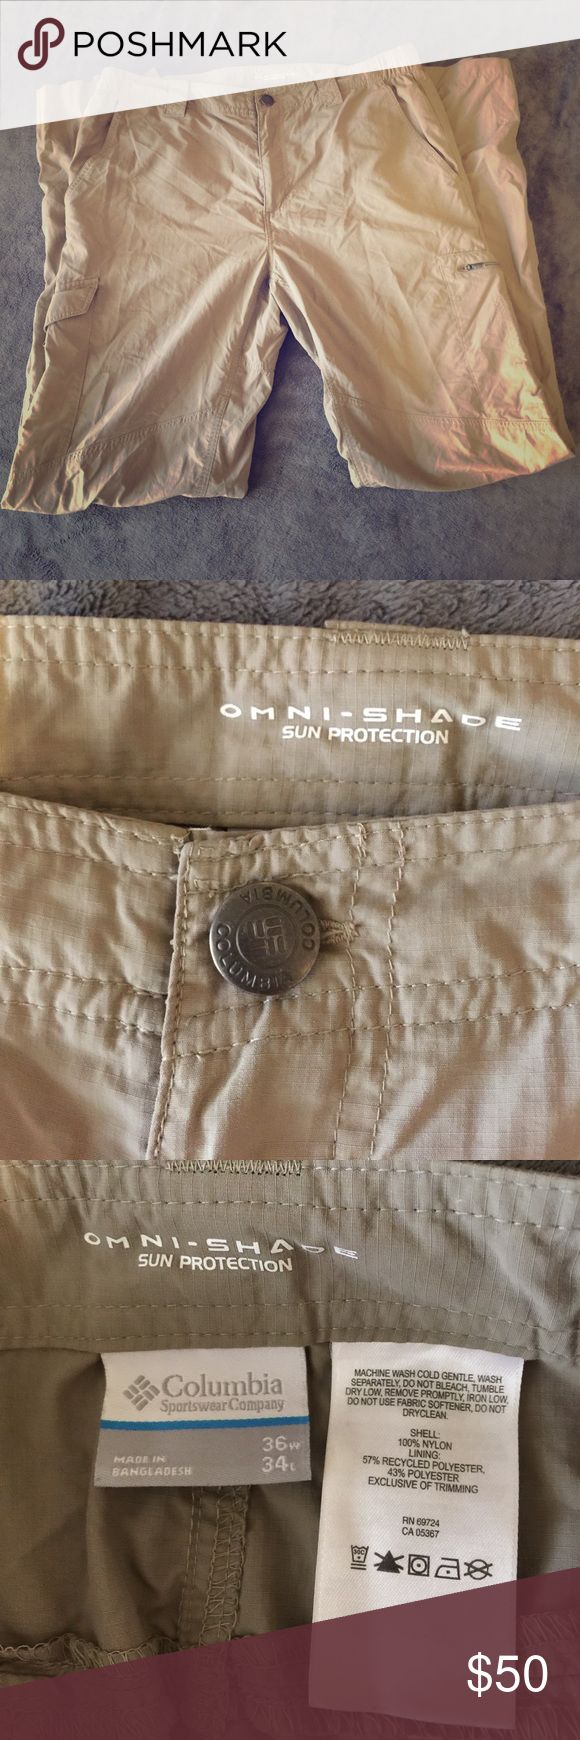 Men's Columbia outdoor pants. Size 36x34 🏕 Amazing Columbia outdoor pants. Great for hiking or camping. Has Omni-shade sun protection. Cargo style pants that are in fantastic condition 🐟🌲🐾 Columbia Pants Cargo